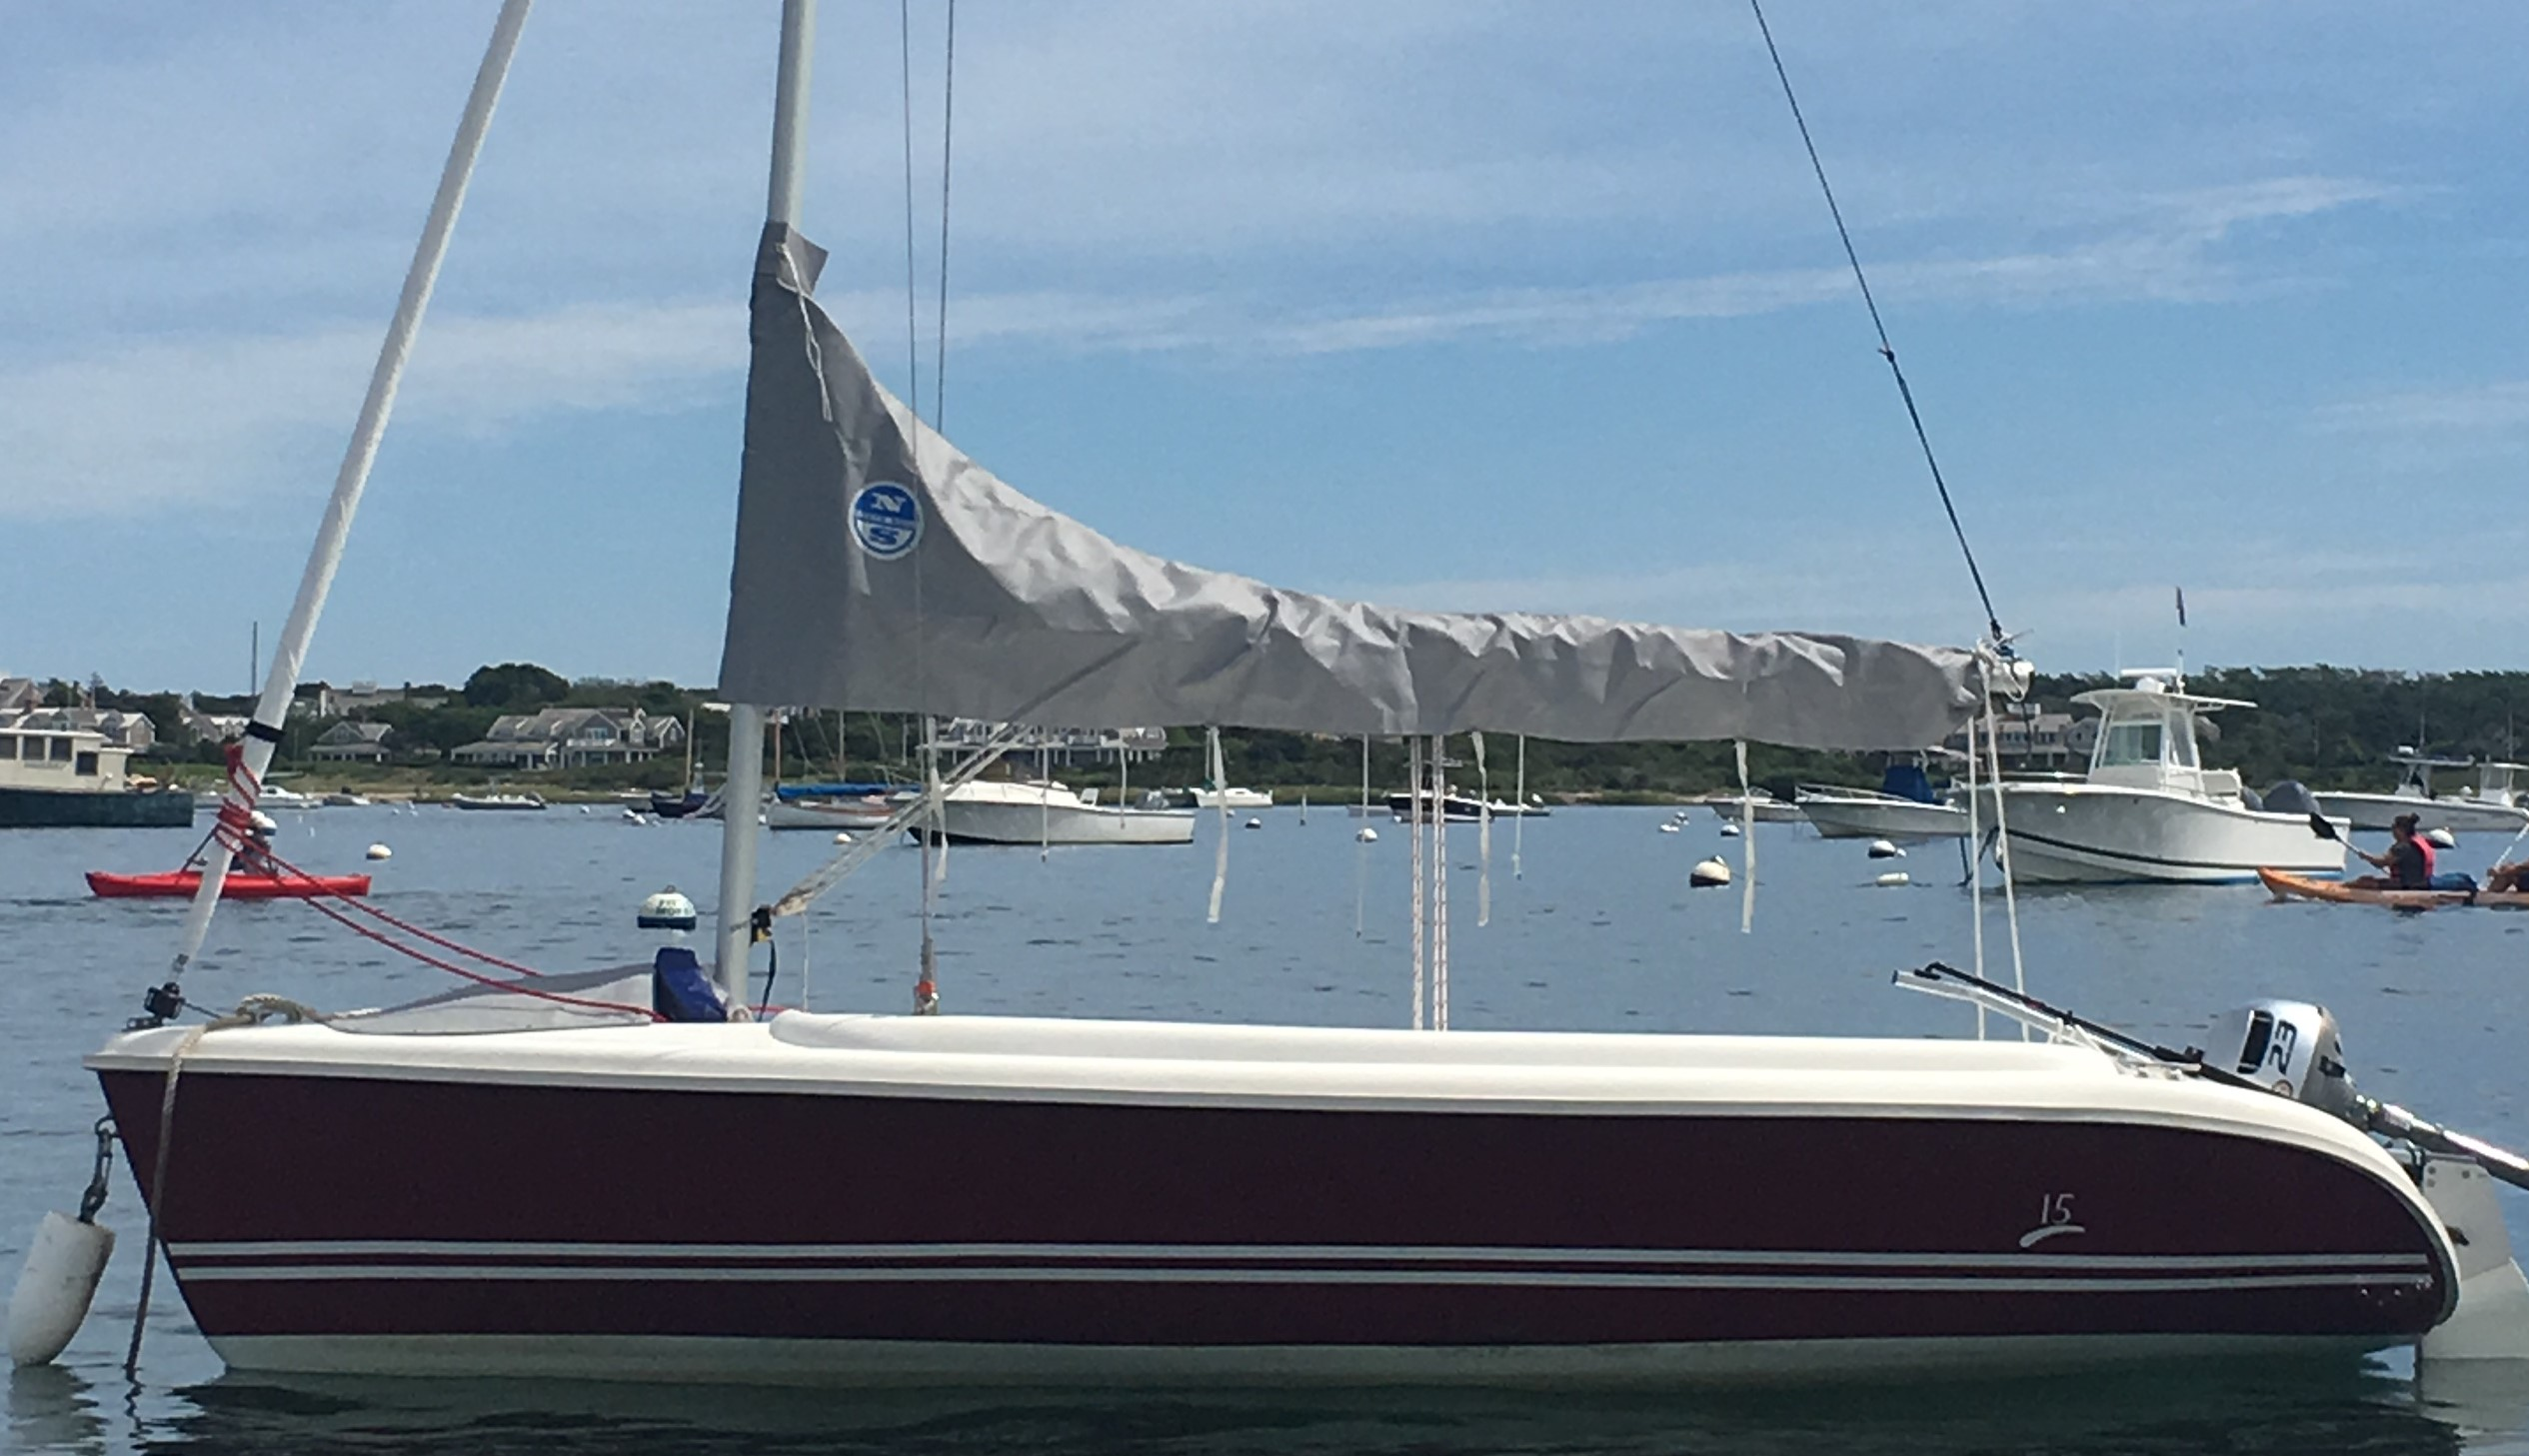 Hunter 15 Sail Boat For sale - Nantucket Classifieds